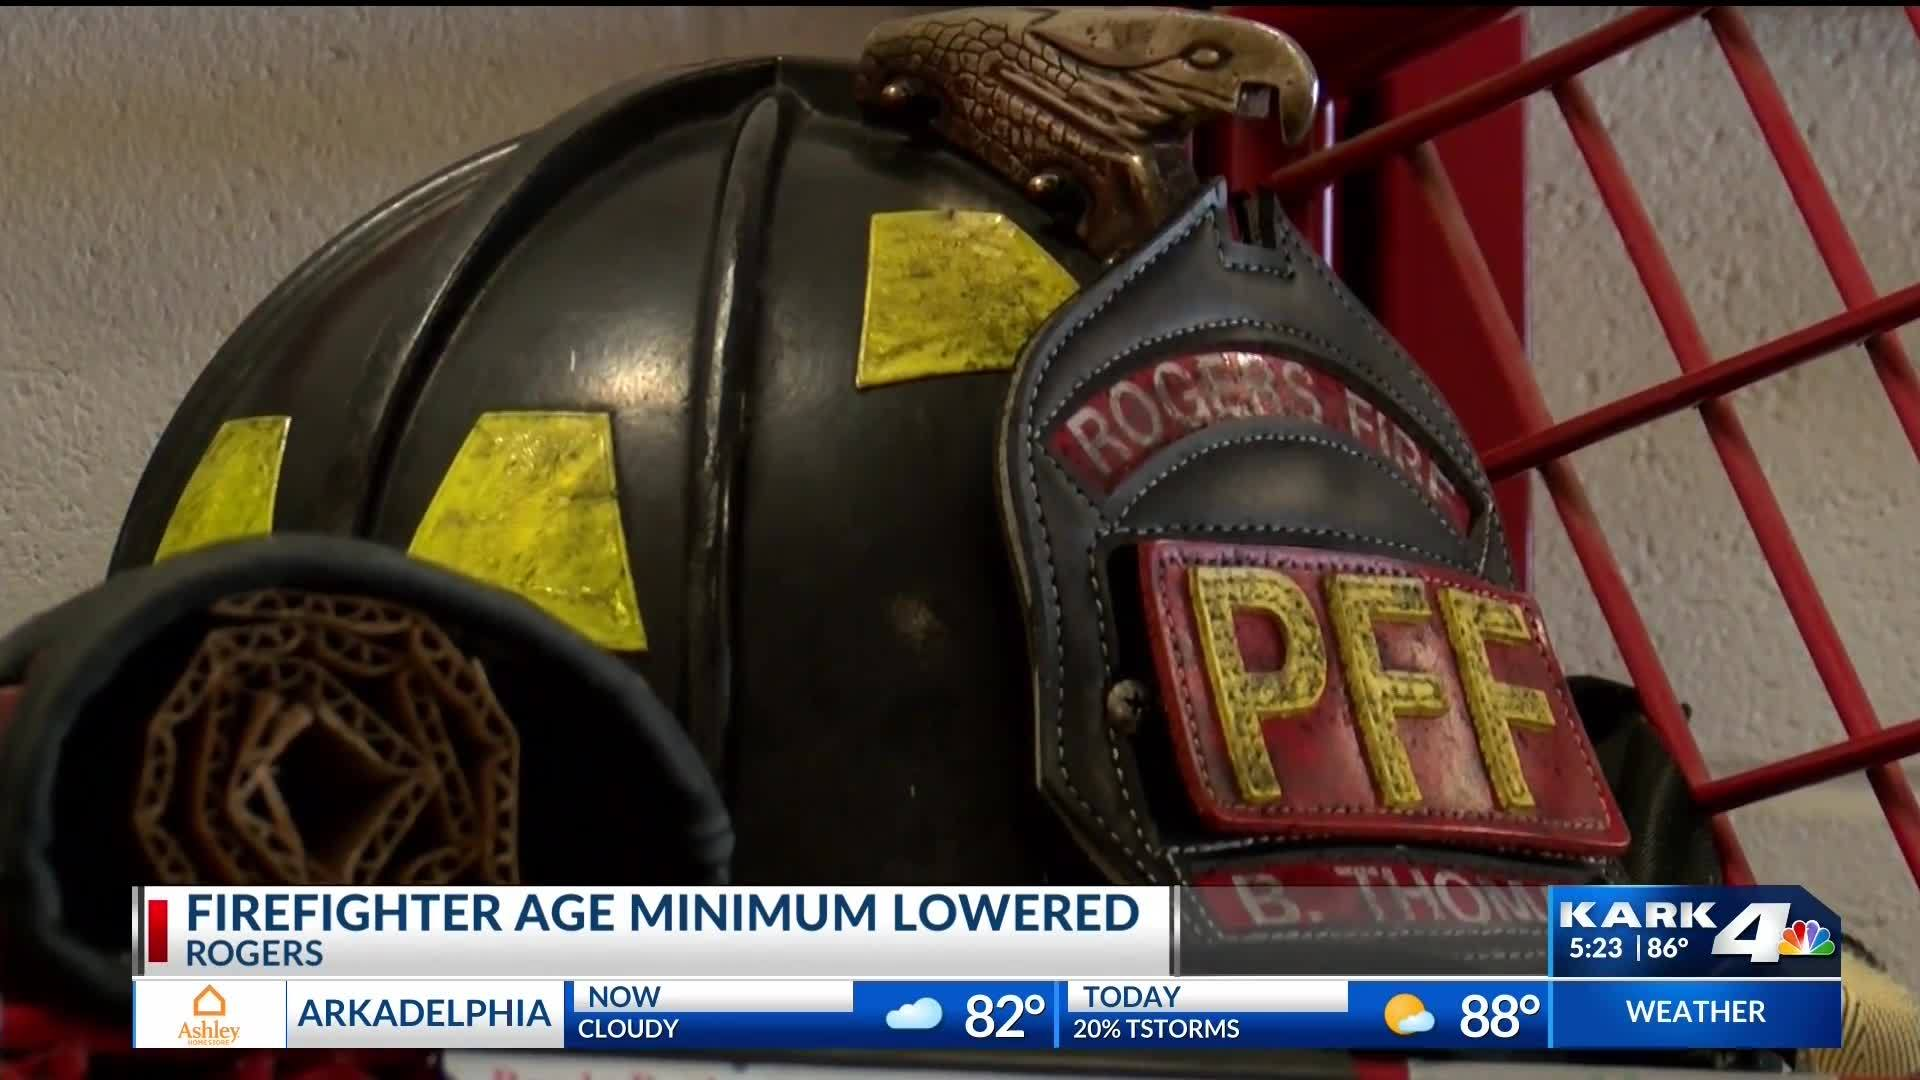 Firefighter_Age_Lowered_6_20190625231208